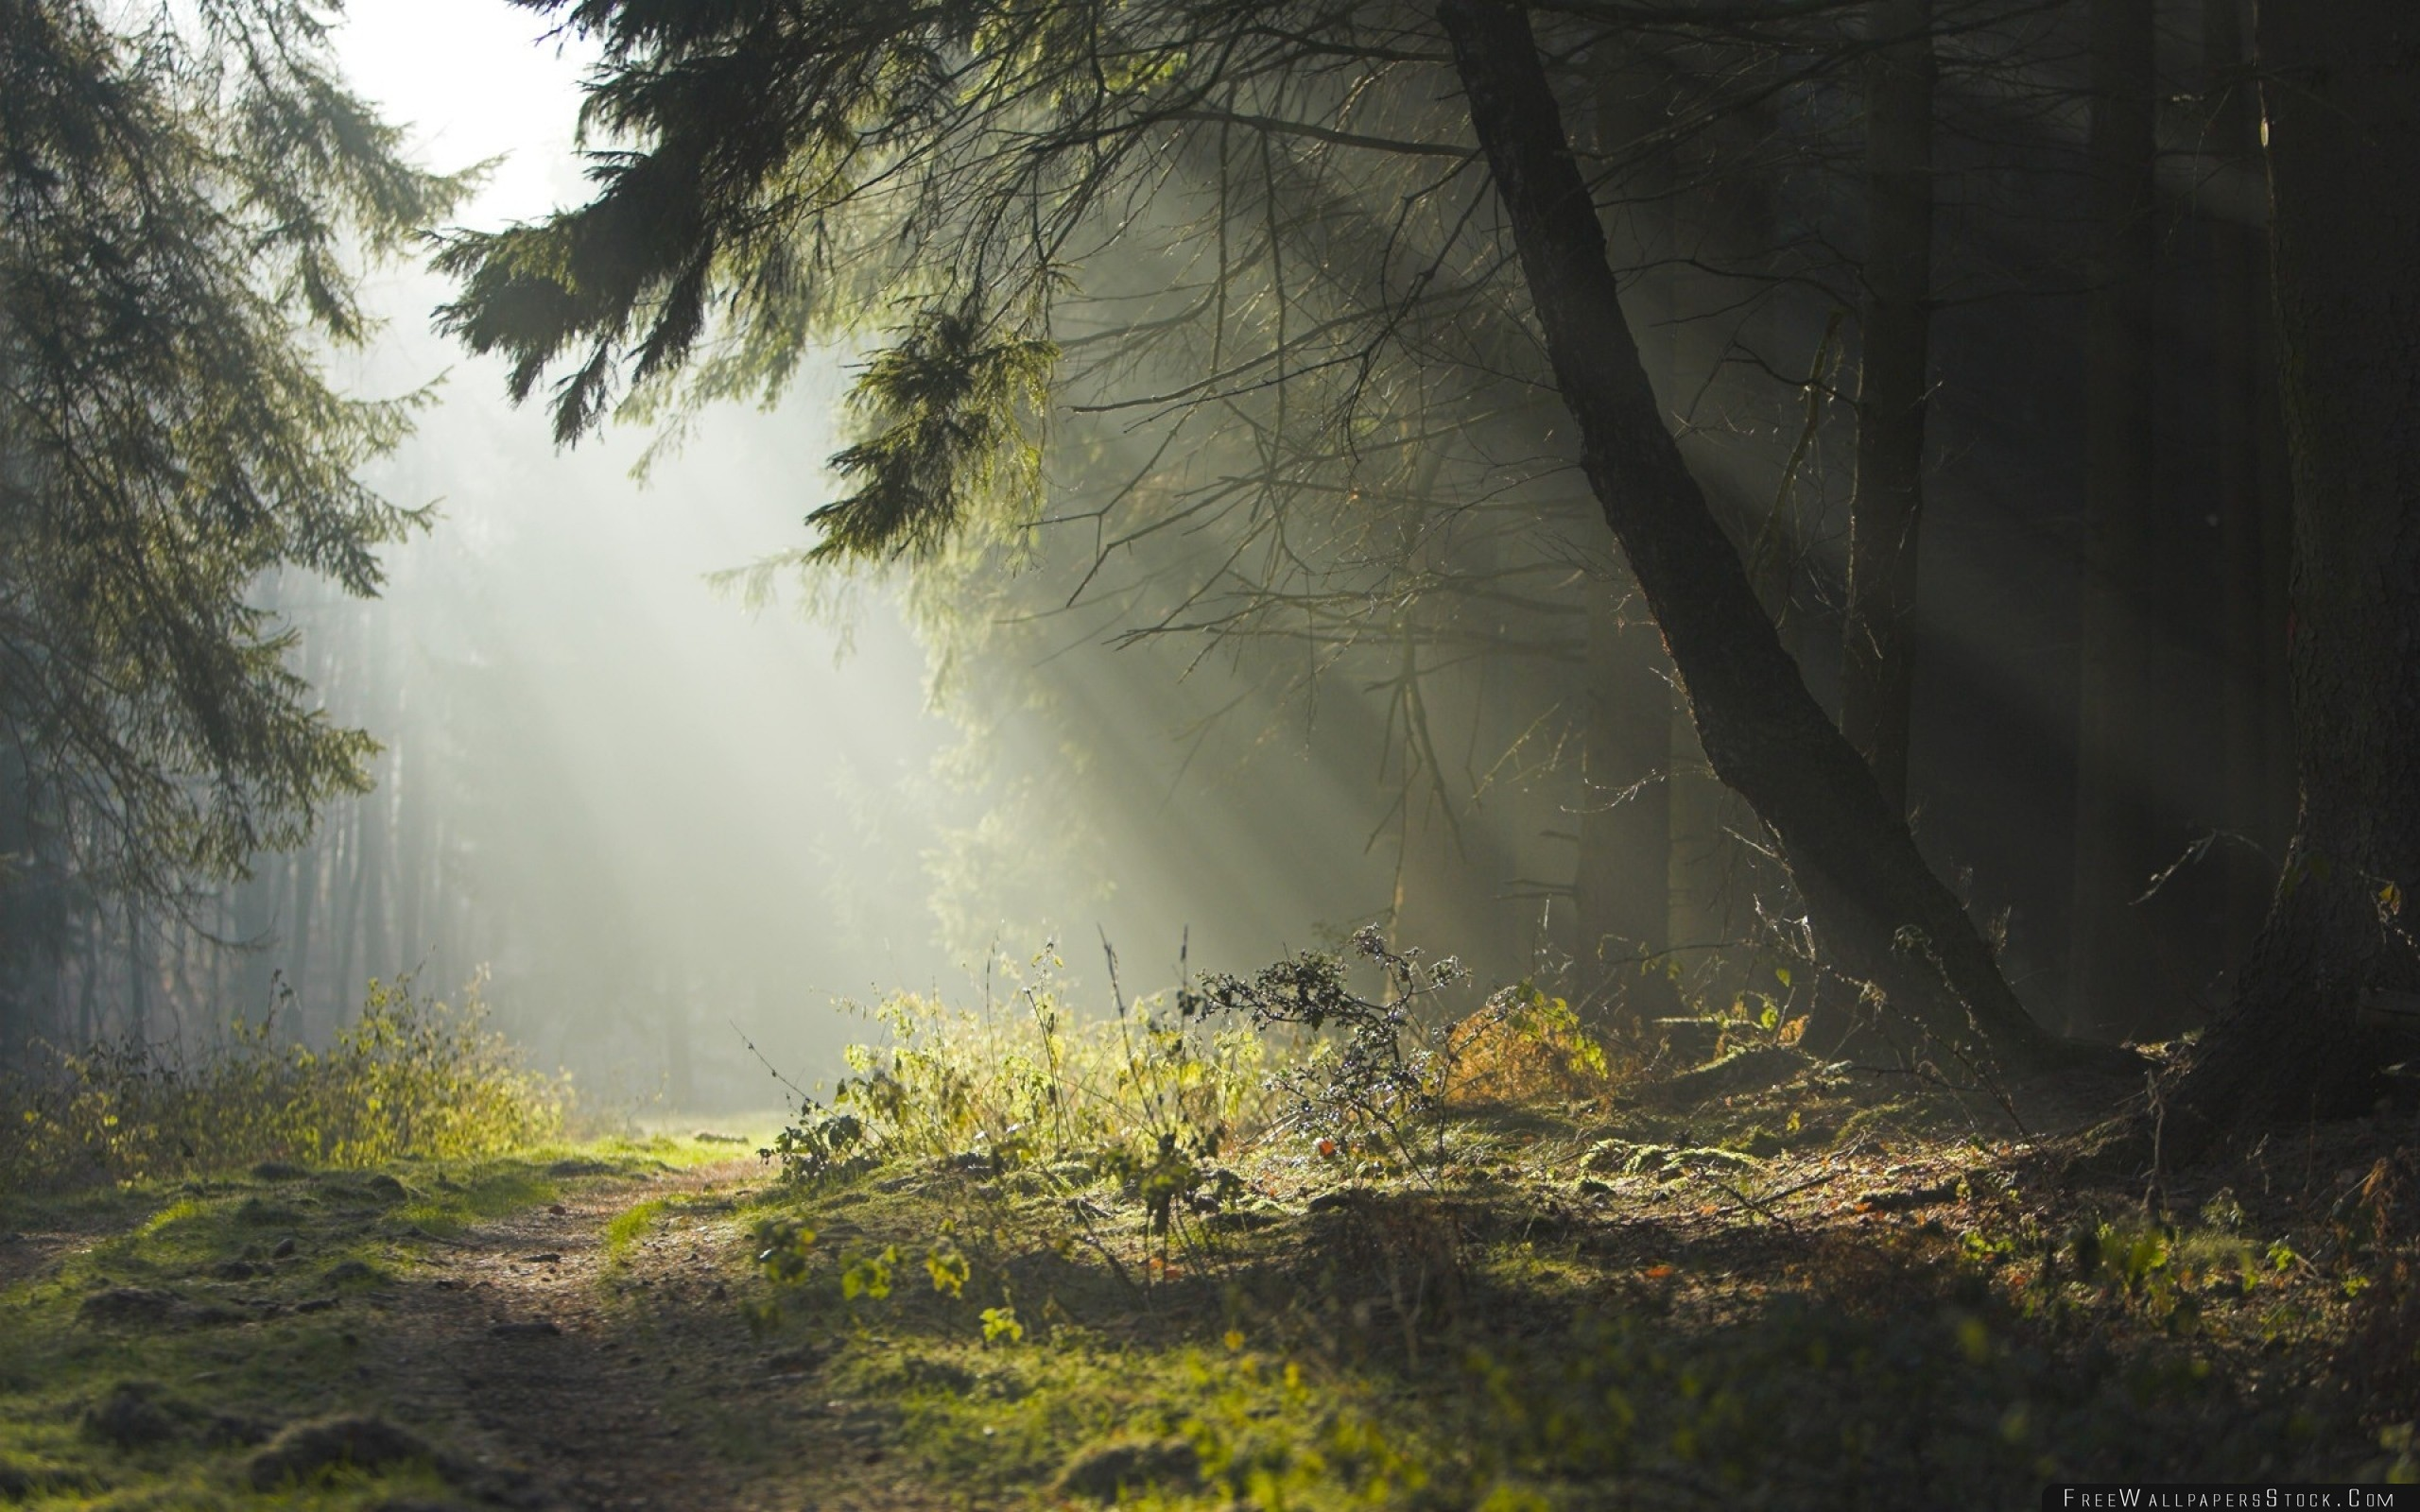 Download Free Wallpaper Wood Trees Earth Grass Sun Rays Freshness Morning